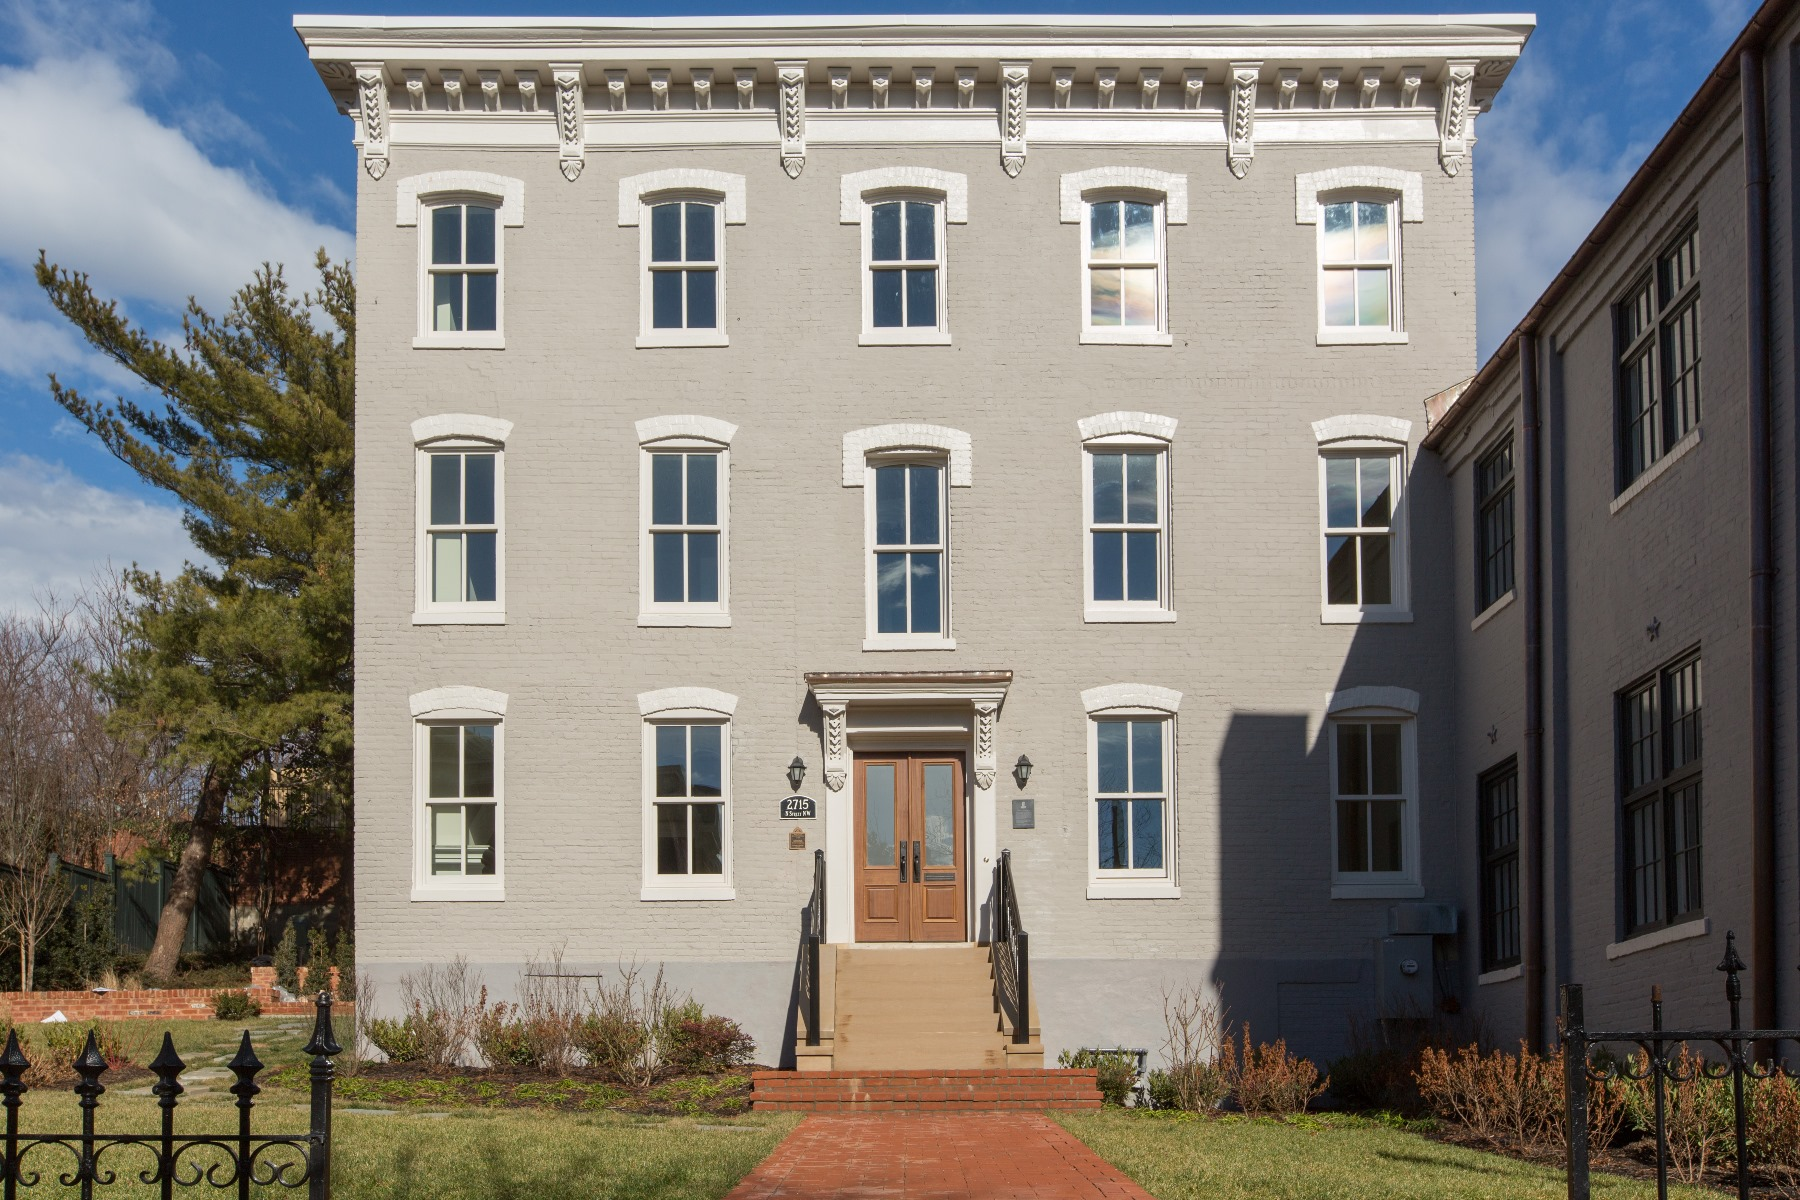 Casa Unifamiliar por un Alquiler en 2715 N Street Nw, Washington Washington, Distrito De Columbia 20007 Estados Unidos